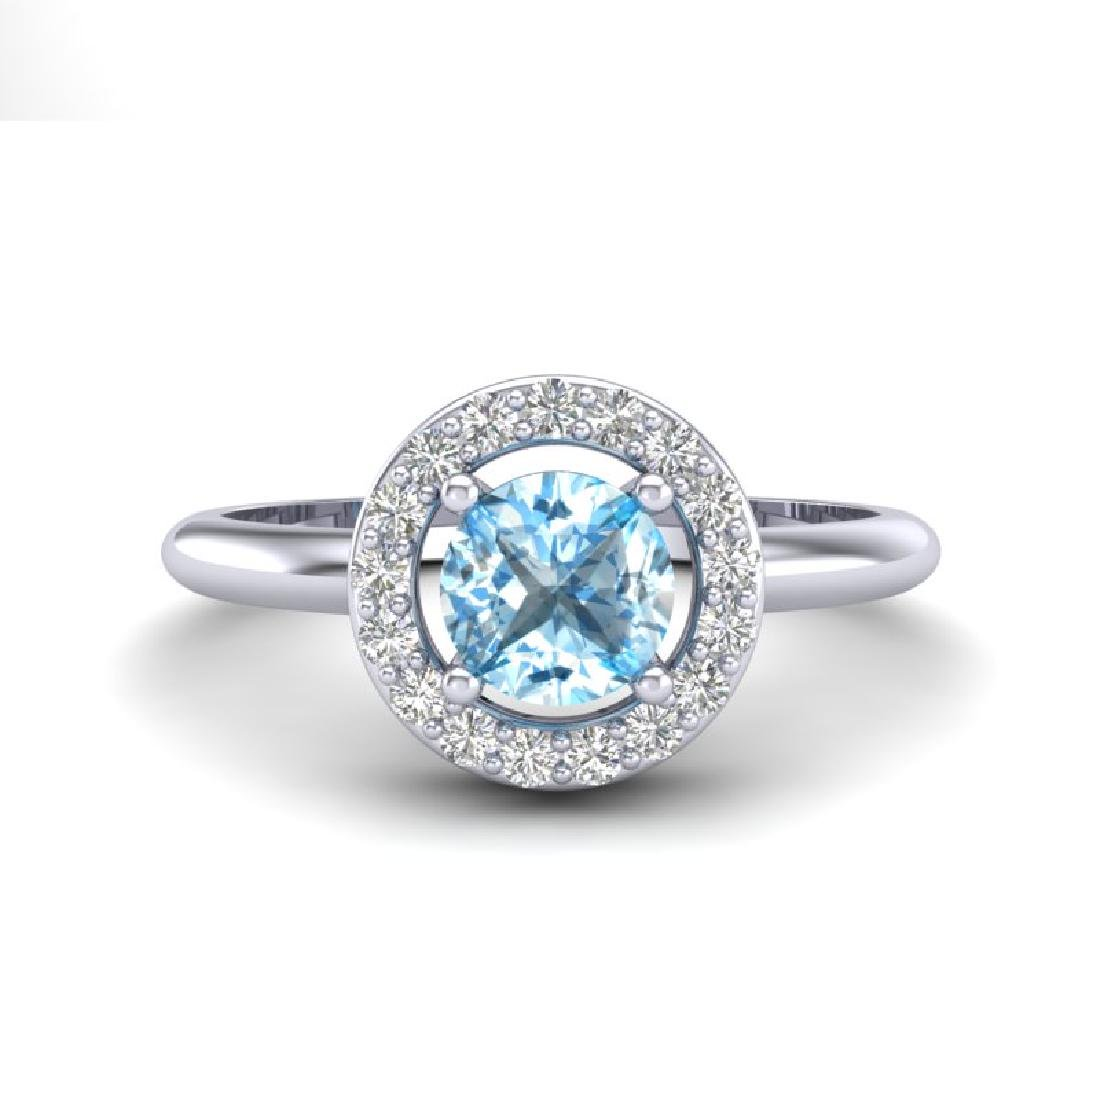 0.75 CTW Sky Blue Topaz & Micro Pave Halo VS/SI Diamond